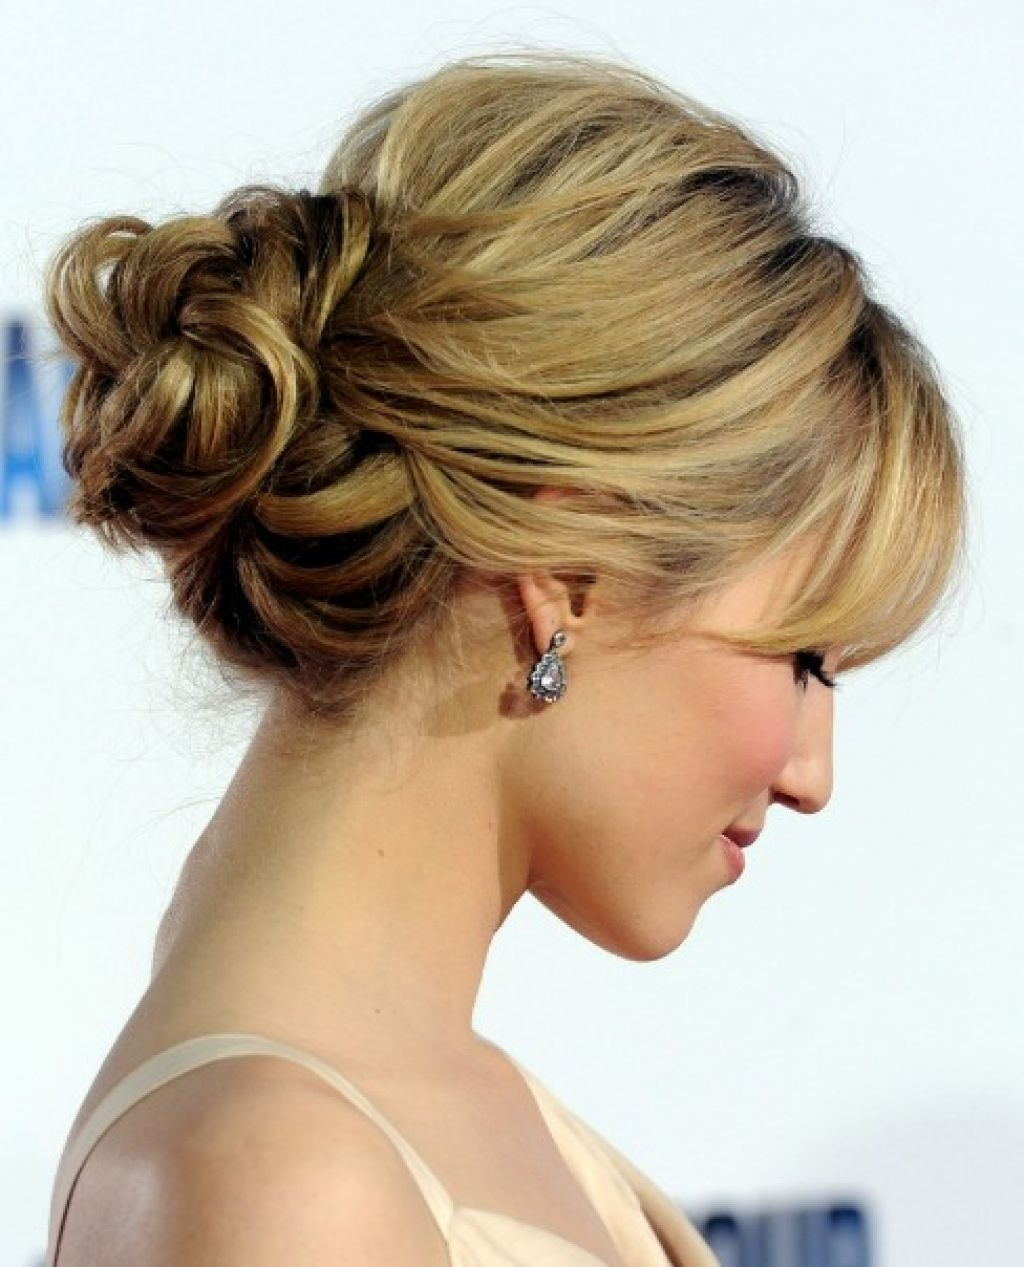 Romantic Loose Low Bun Updo For Wedding From Dianna Agron | Wedding Throughout Loose Bun Updo Hairstyles (View 15 of 15)